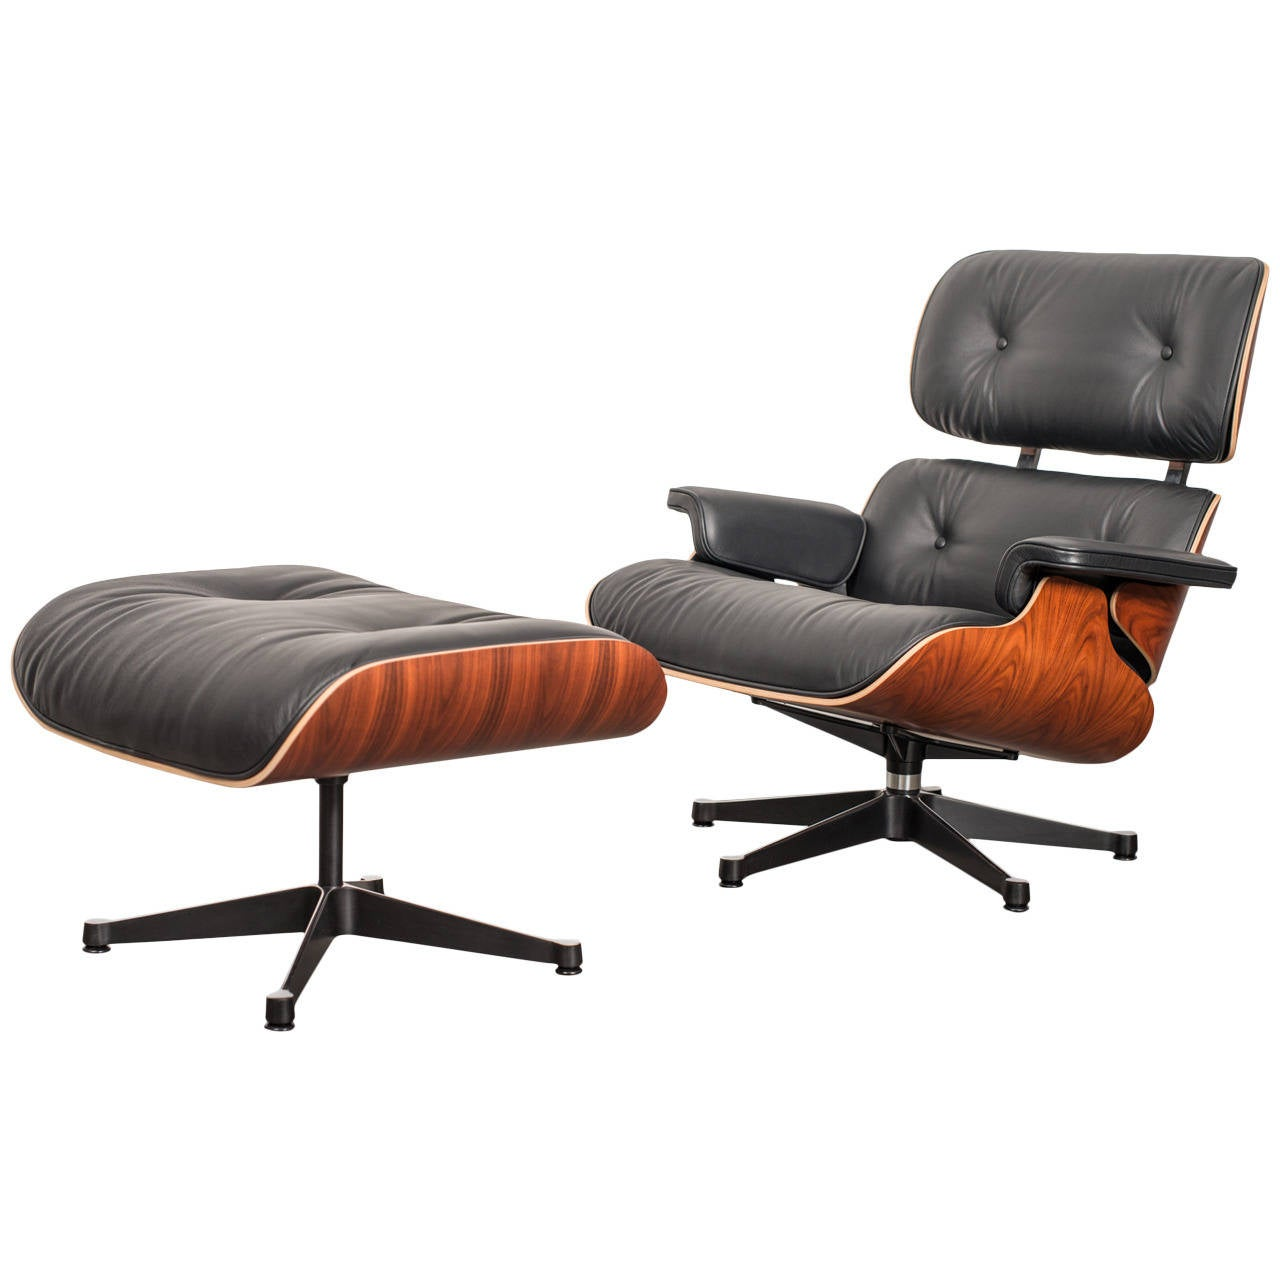 charles and ray eames lounge chair classic xl vitra at 1stdibs. Black Bedroom Furniture Sets. Home Design Ideas